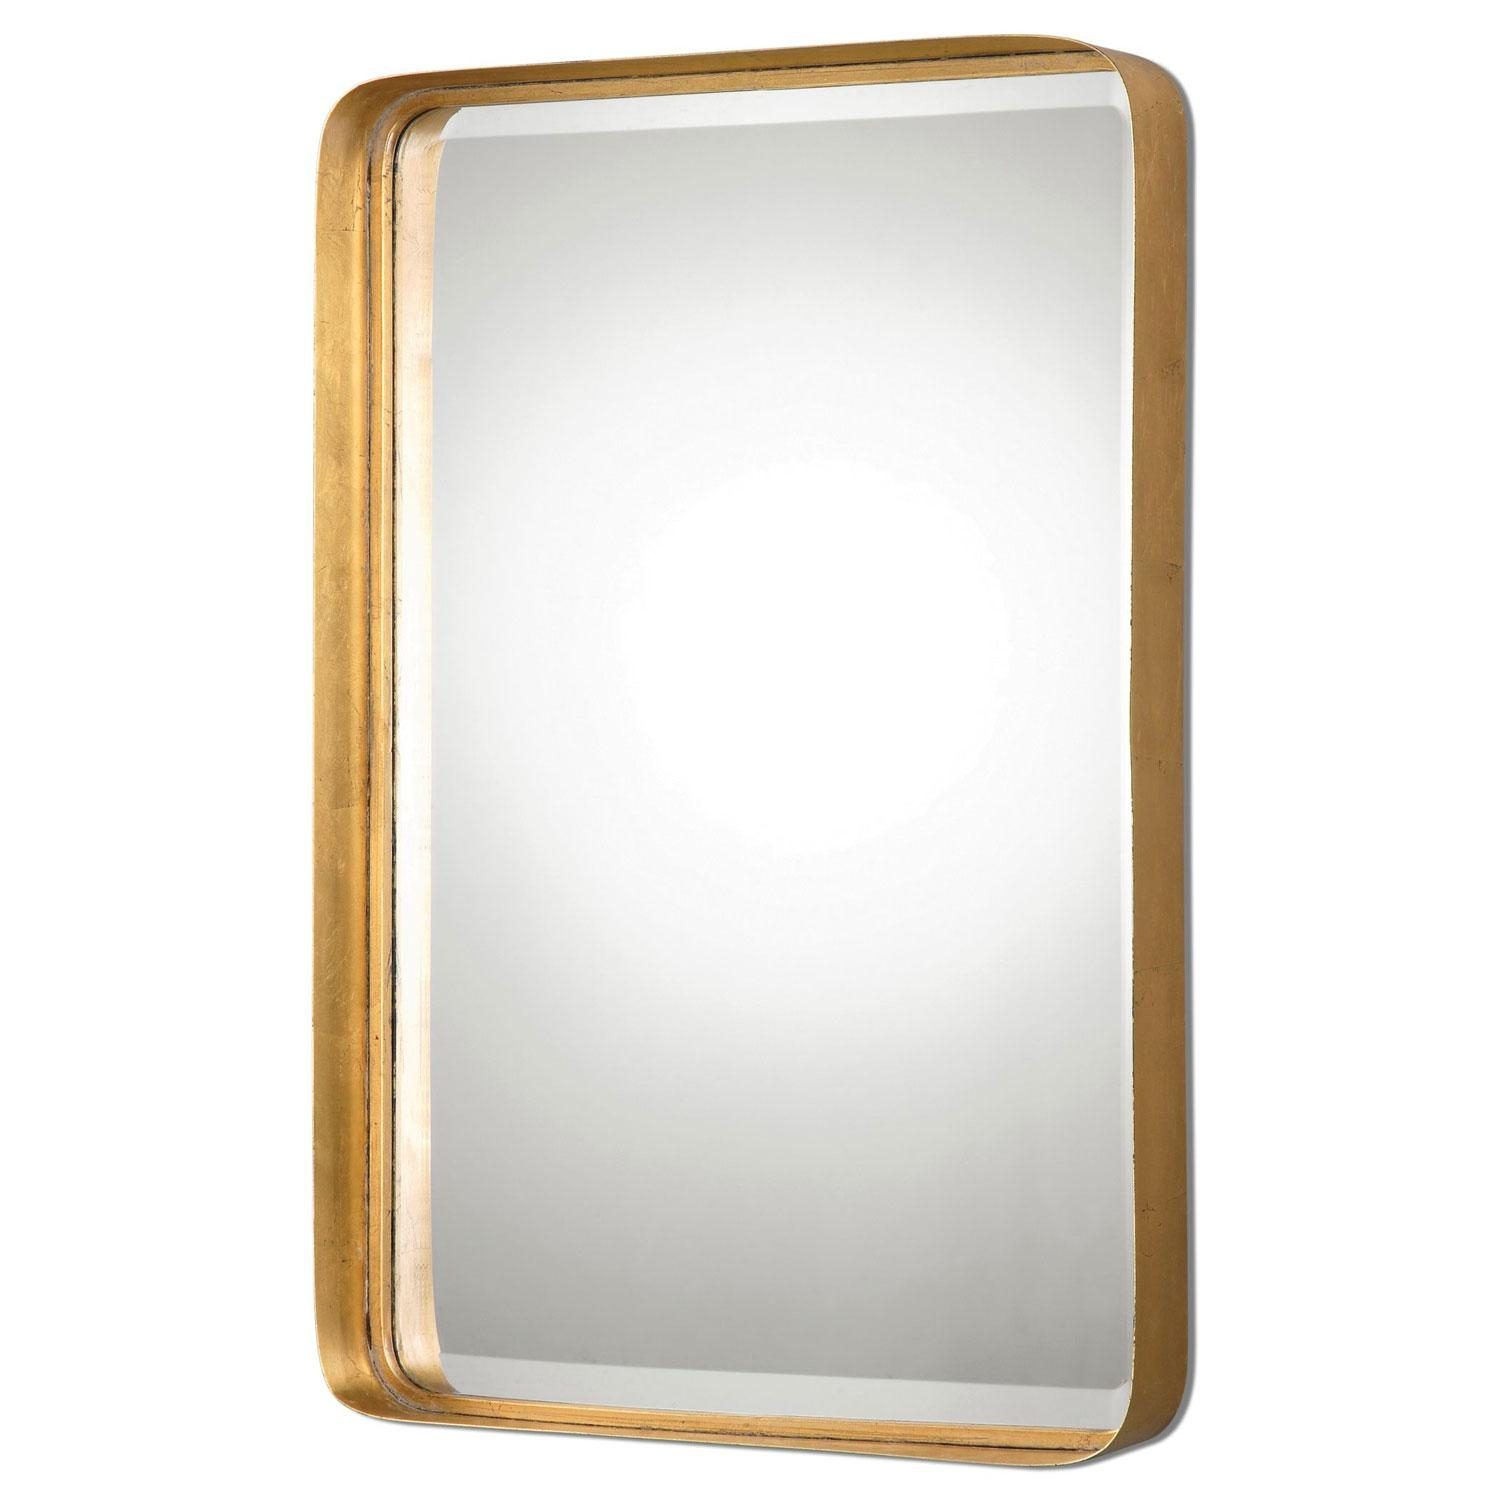 Crofton Antique Gold Mirror Uttermost Wall Mirror Mirrors Home Decor Intended For Gold Antique Mirror (View 3 of 20)